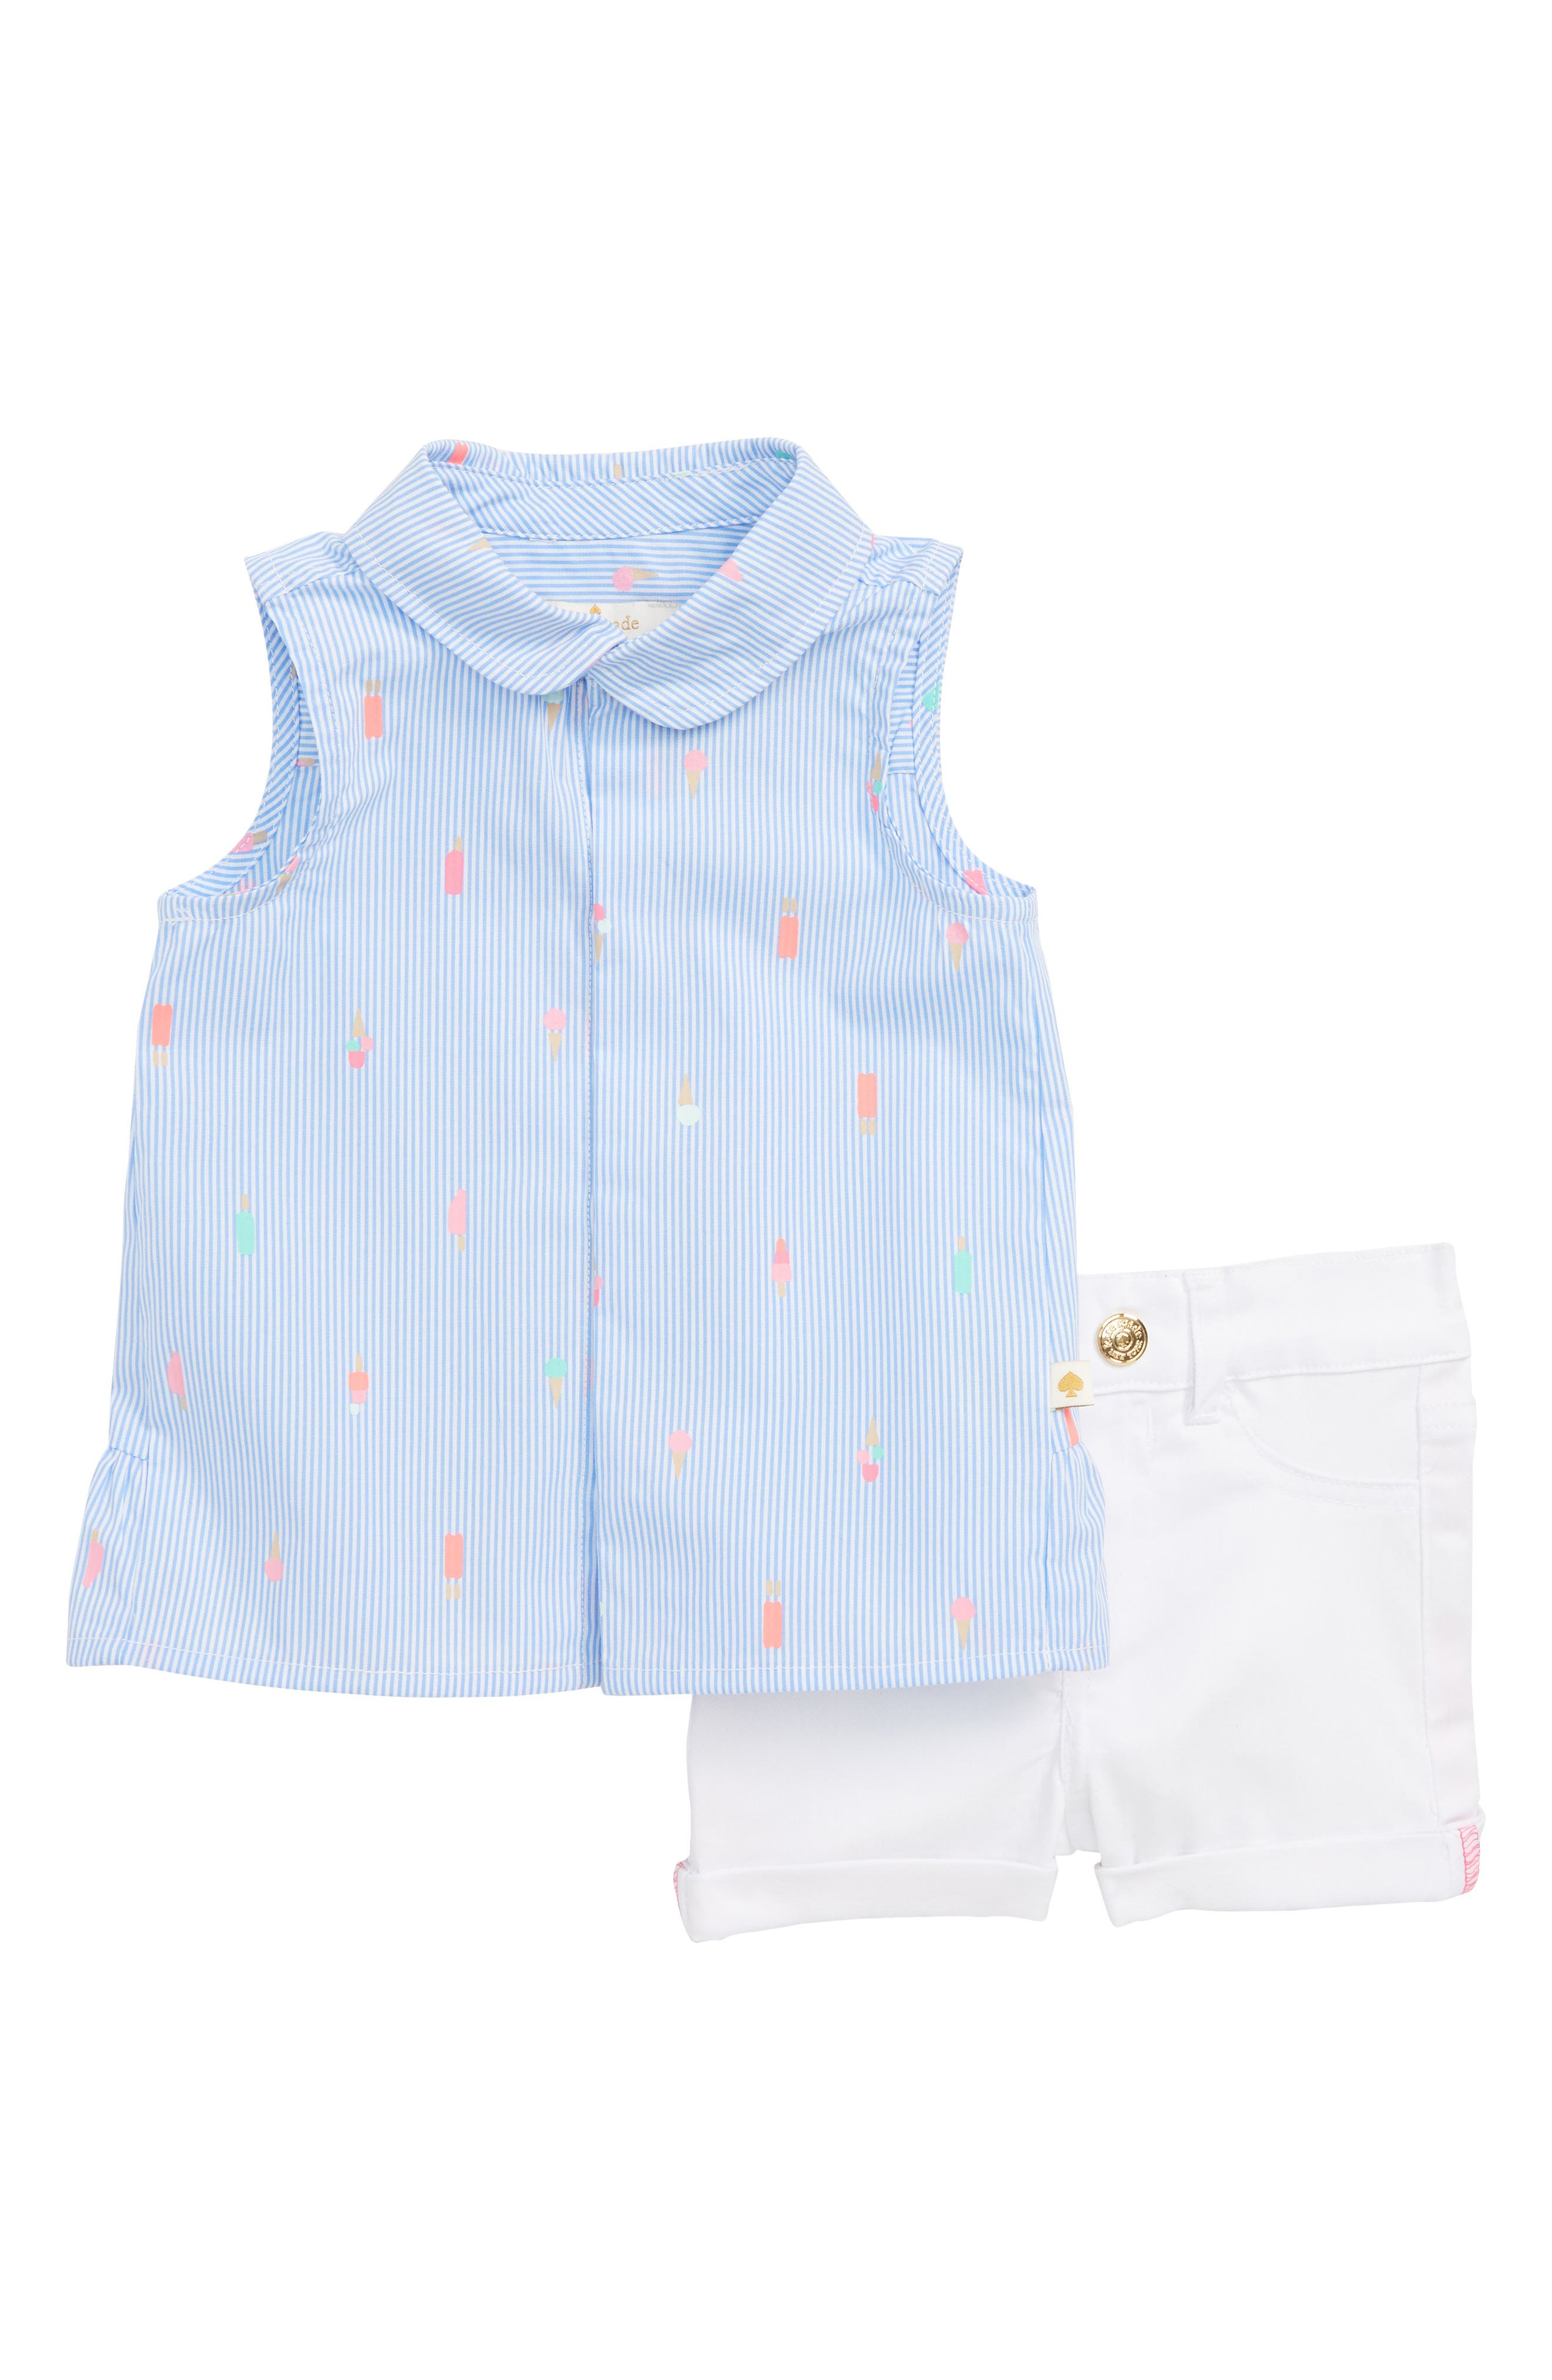 kate spade new york mini ice pops sleeveless top & denim shorts set (Baby Girls)